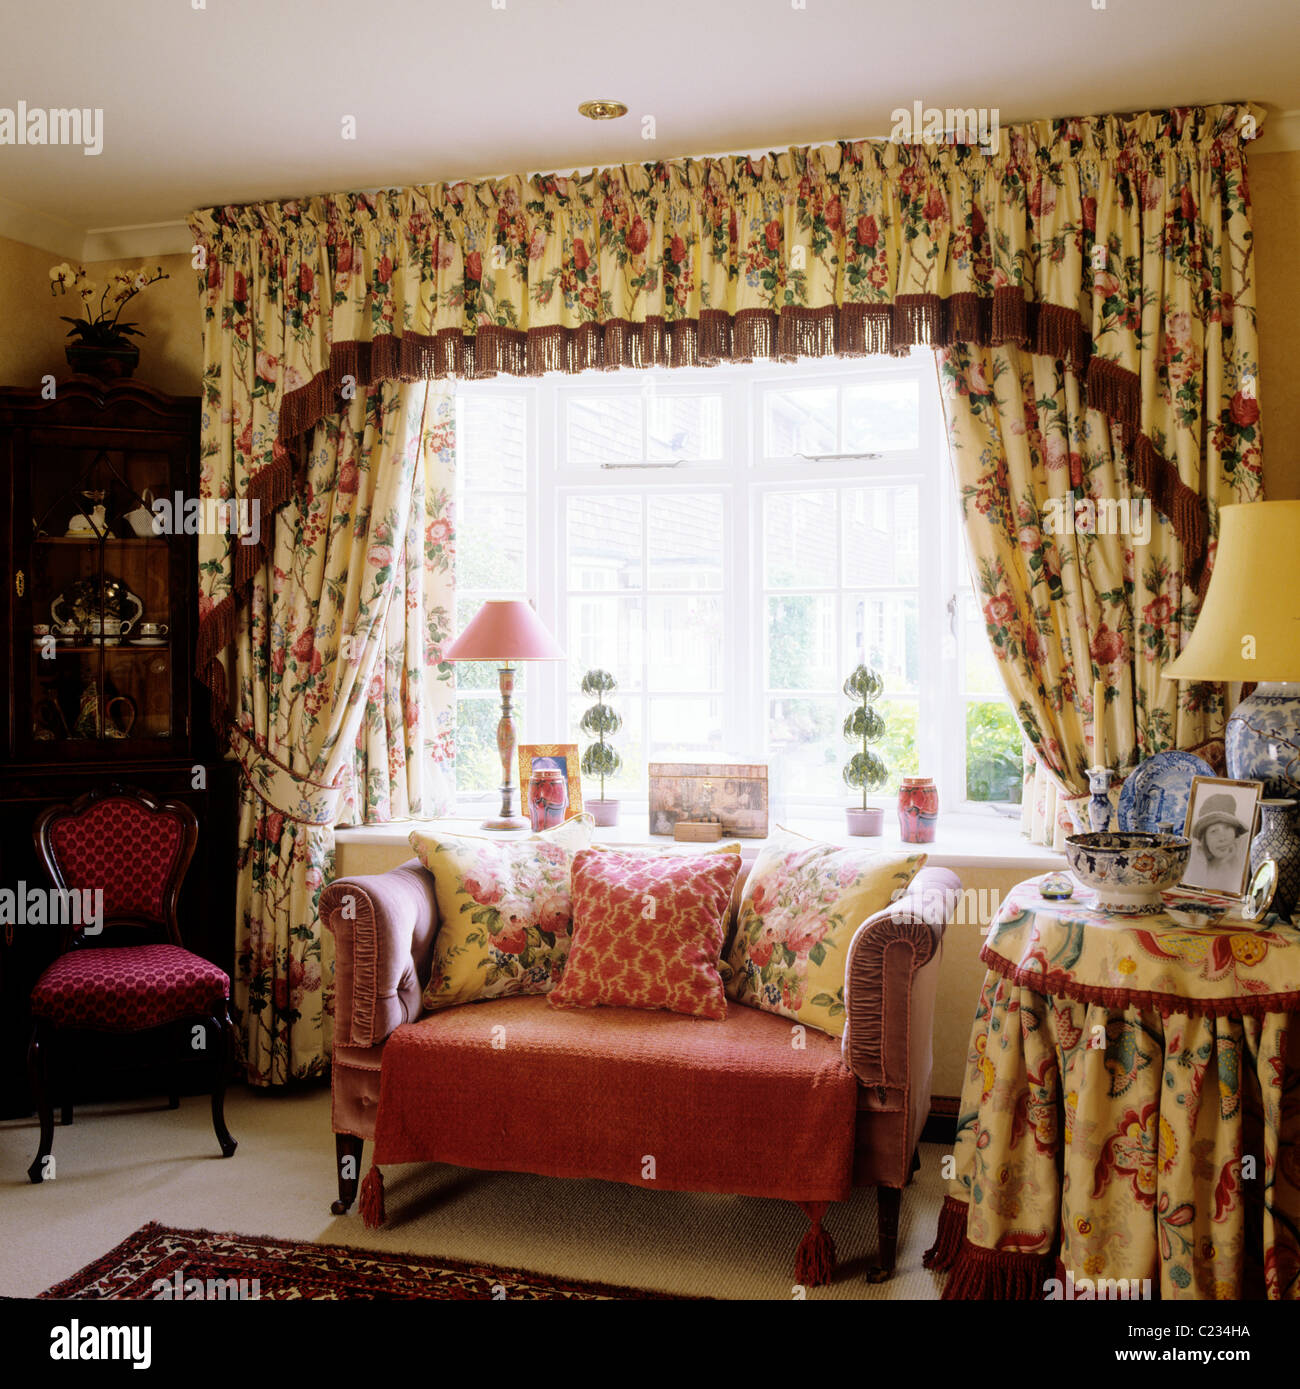 Small Sofa In Front Of Window With Floral Patterned Curtains And Stock Photo Royalty Free Image